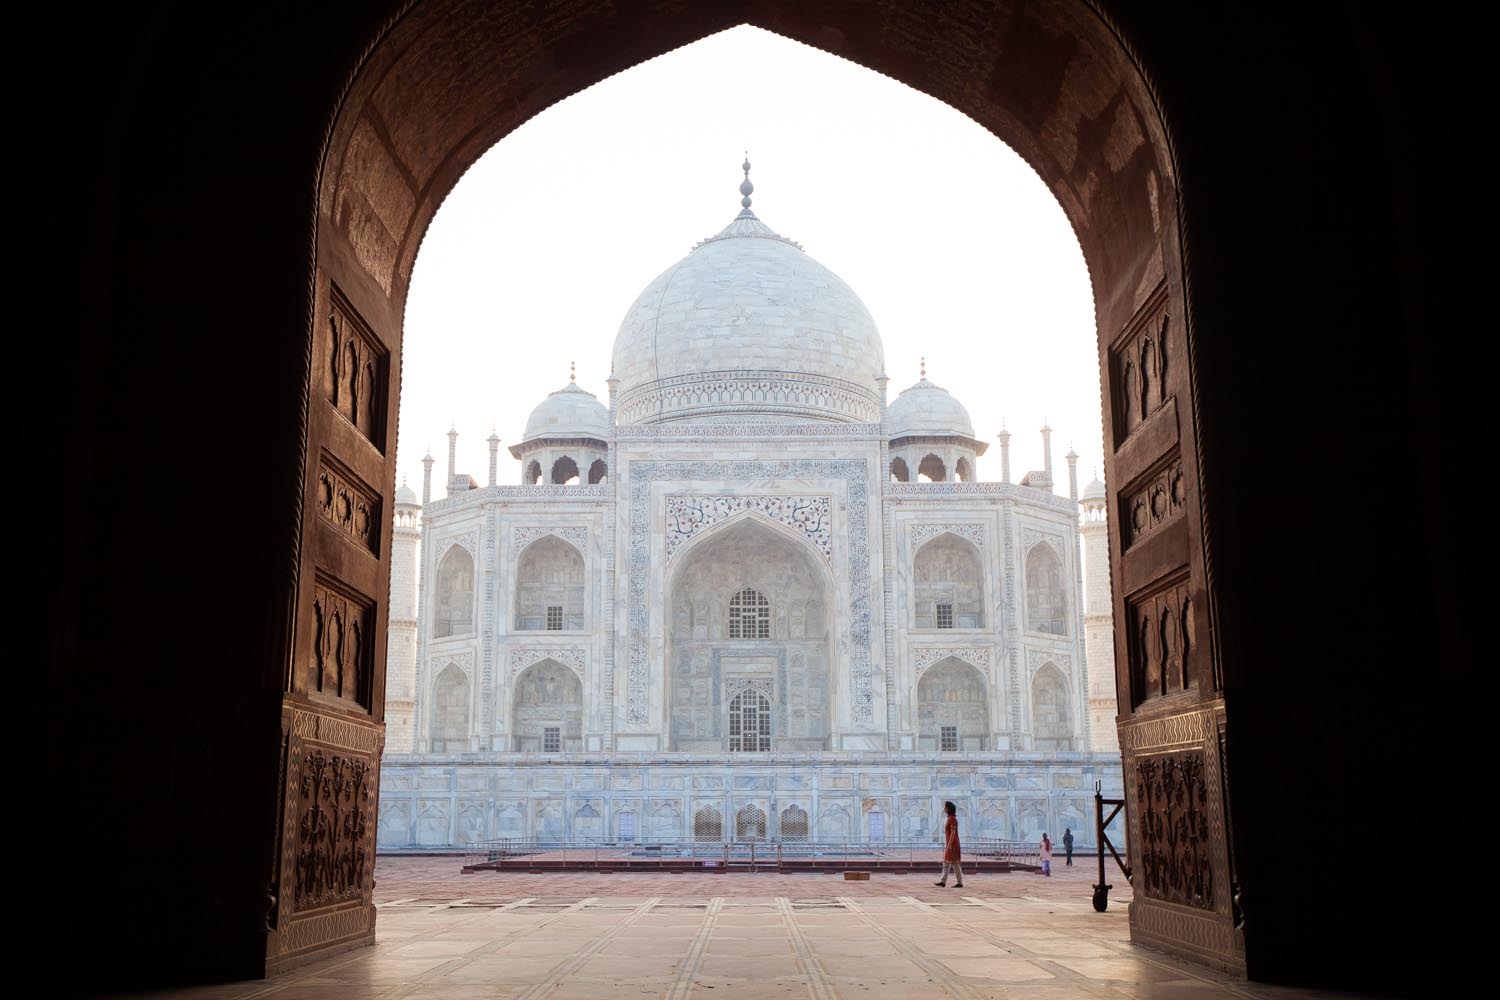 The Taj Mahal: Agra, Uttar Pradesh